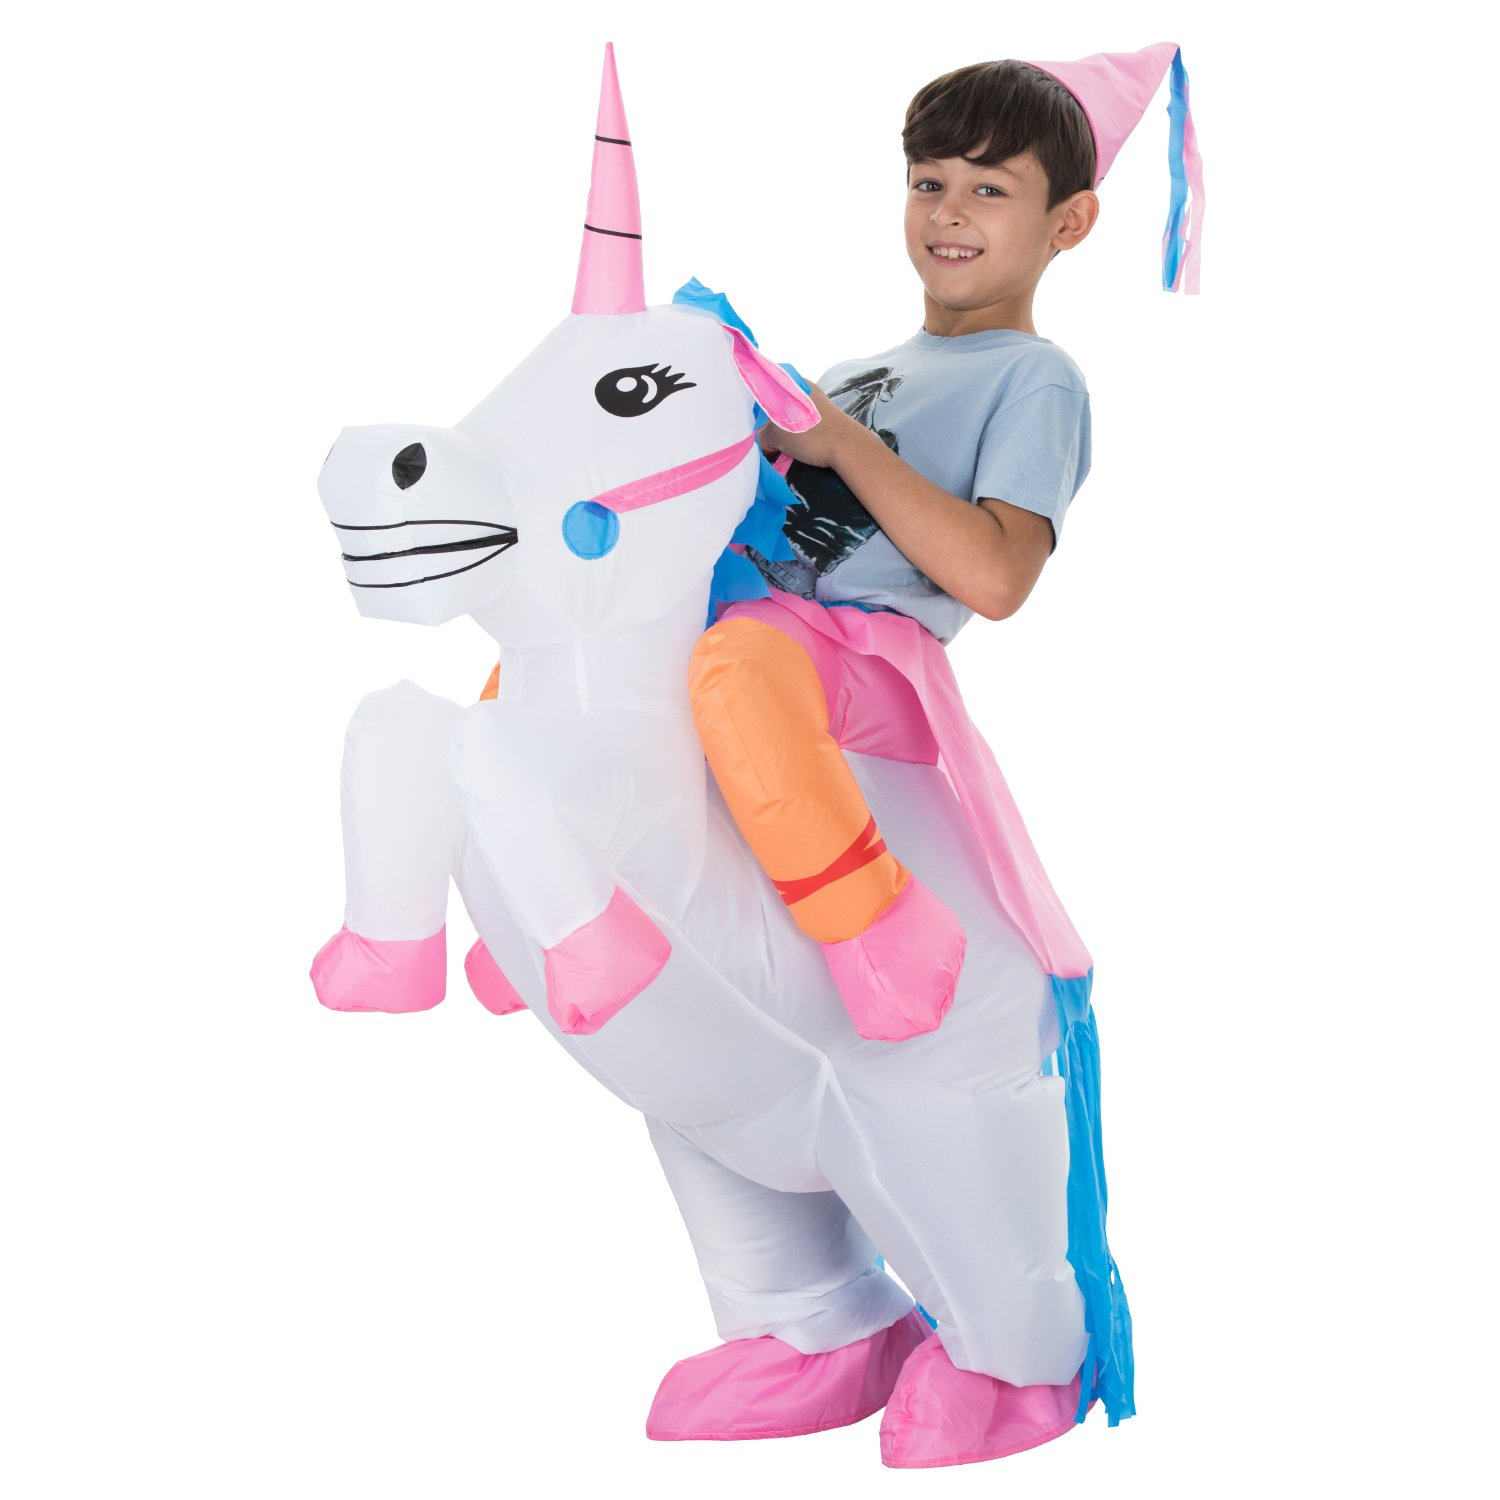 TOLOCO Inflatable Unicorn Rider Costume | Inflatable Costumes For Adults Or Child | Halloween Costume | Blow Up Costume (Kid Unicorn) by TOLOCO